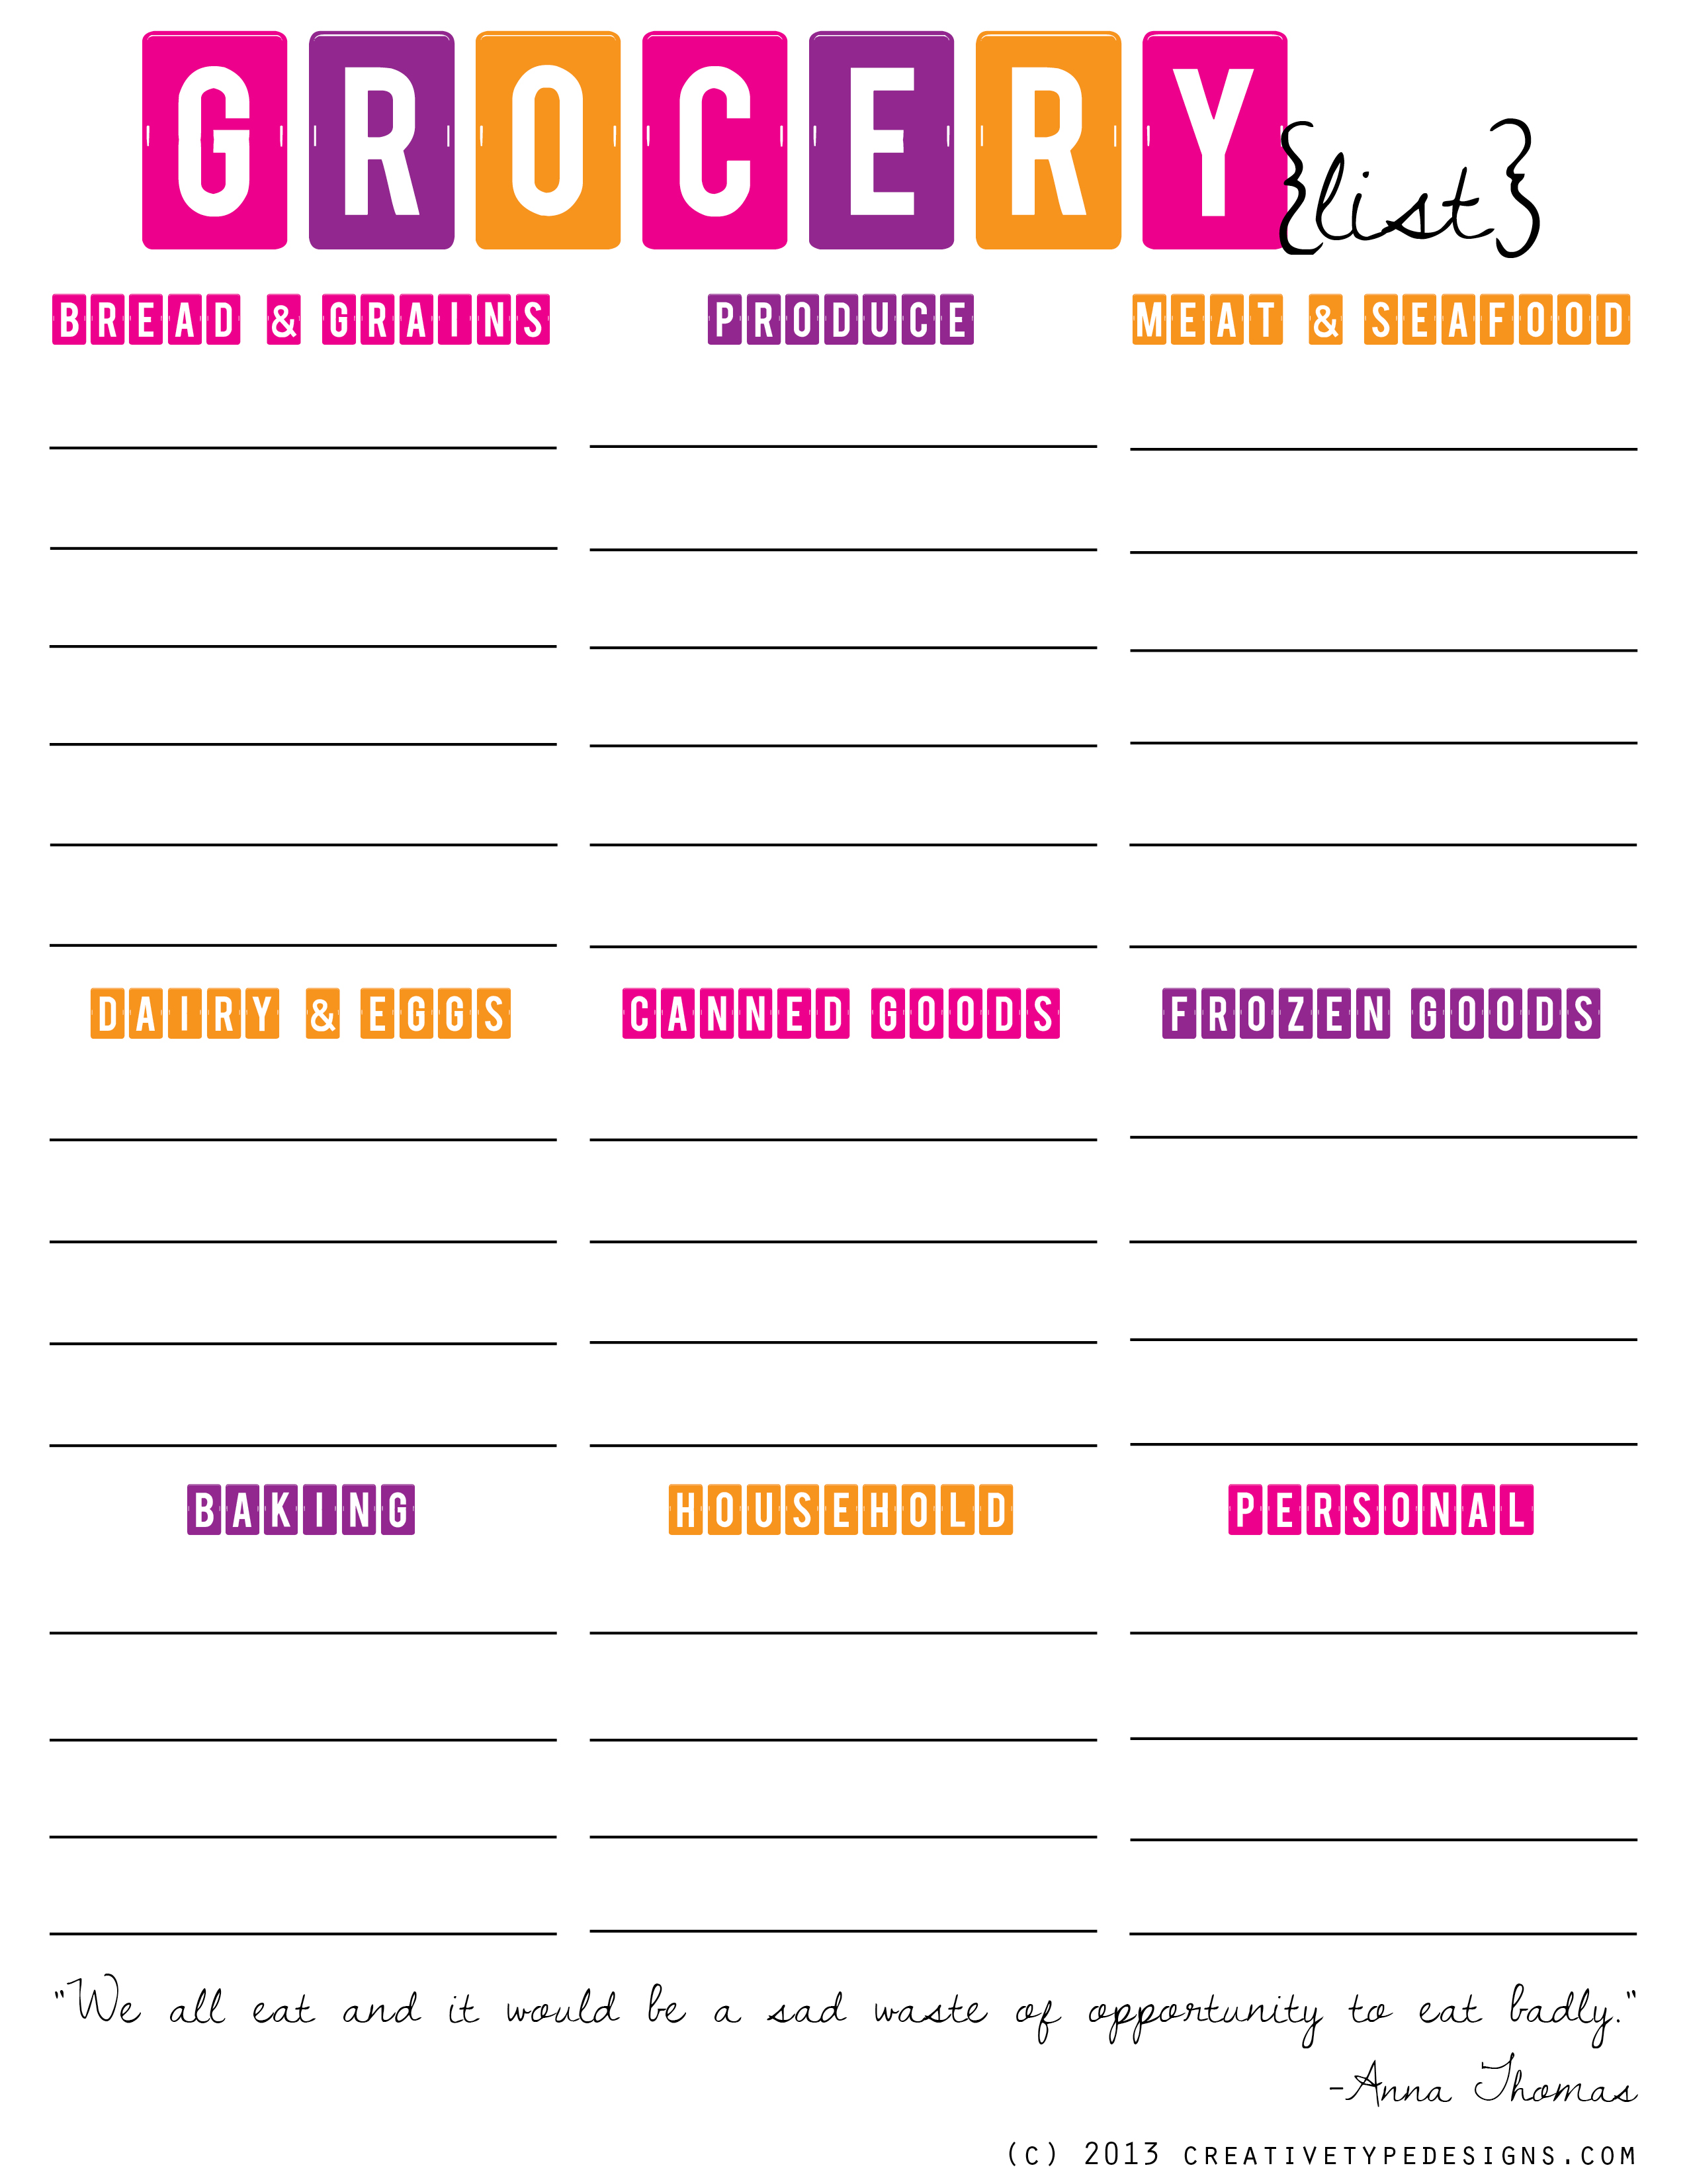 8 Images of Fill In Printable Grocery List